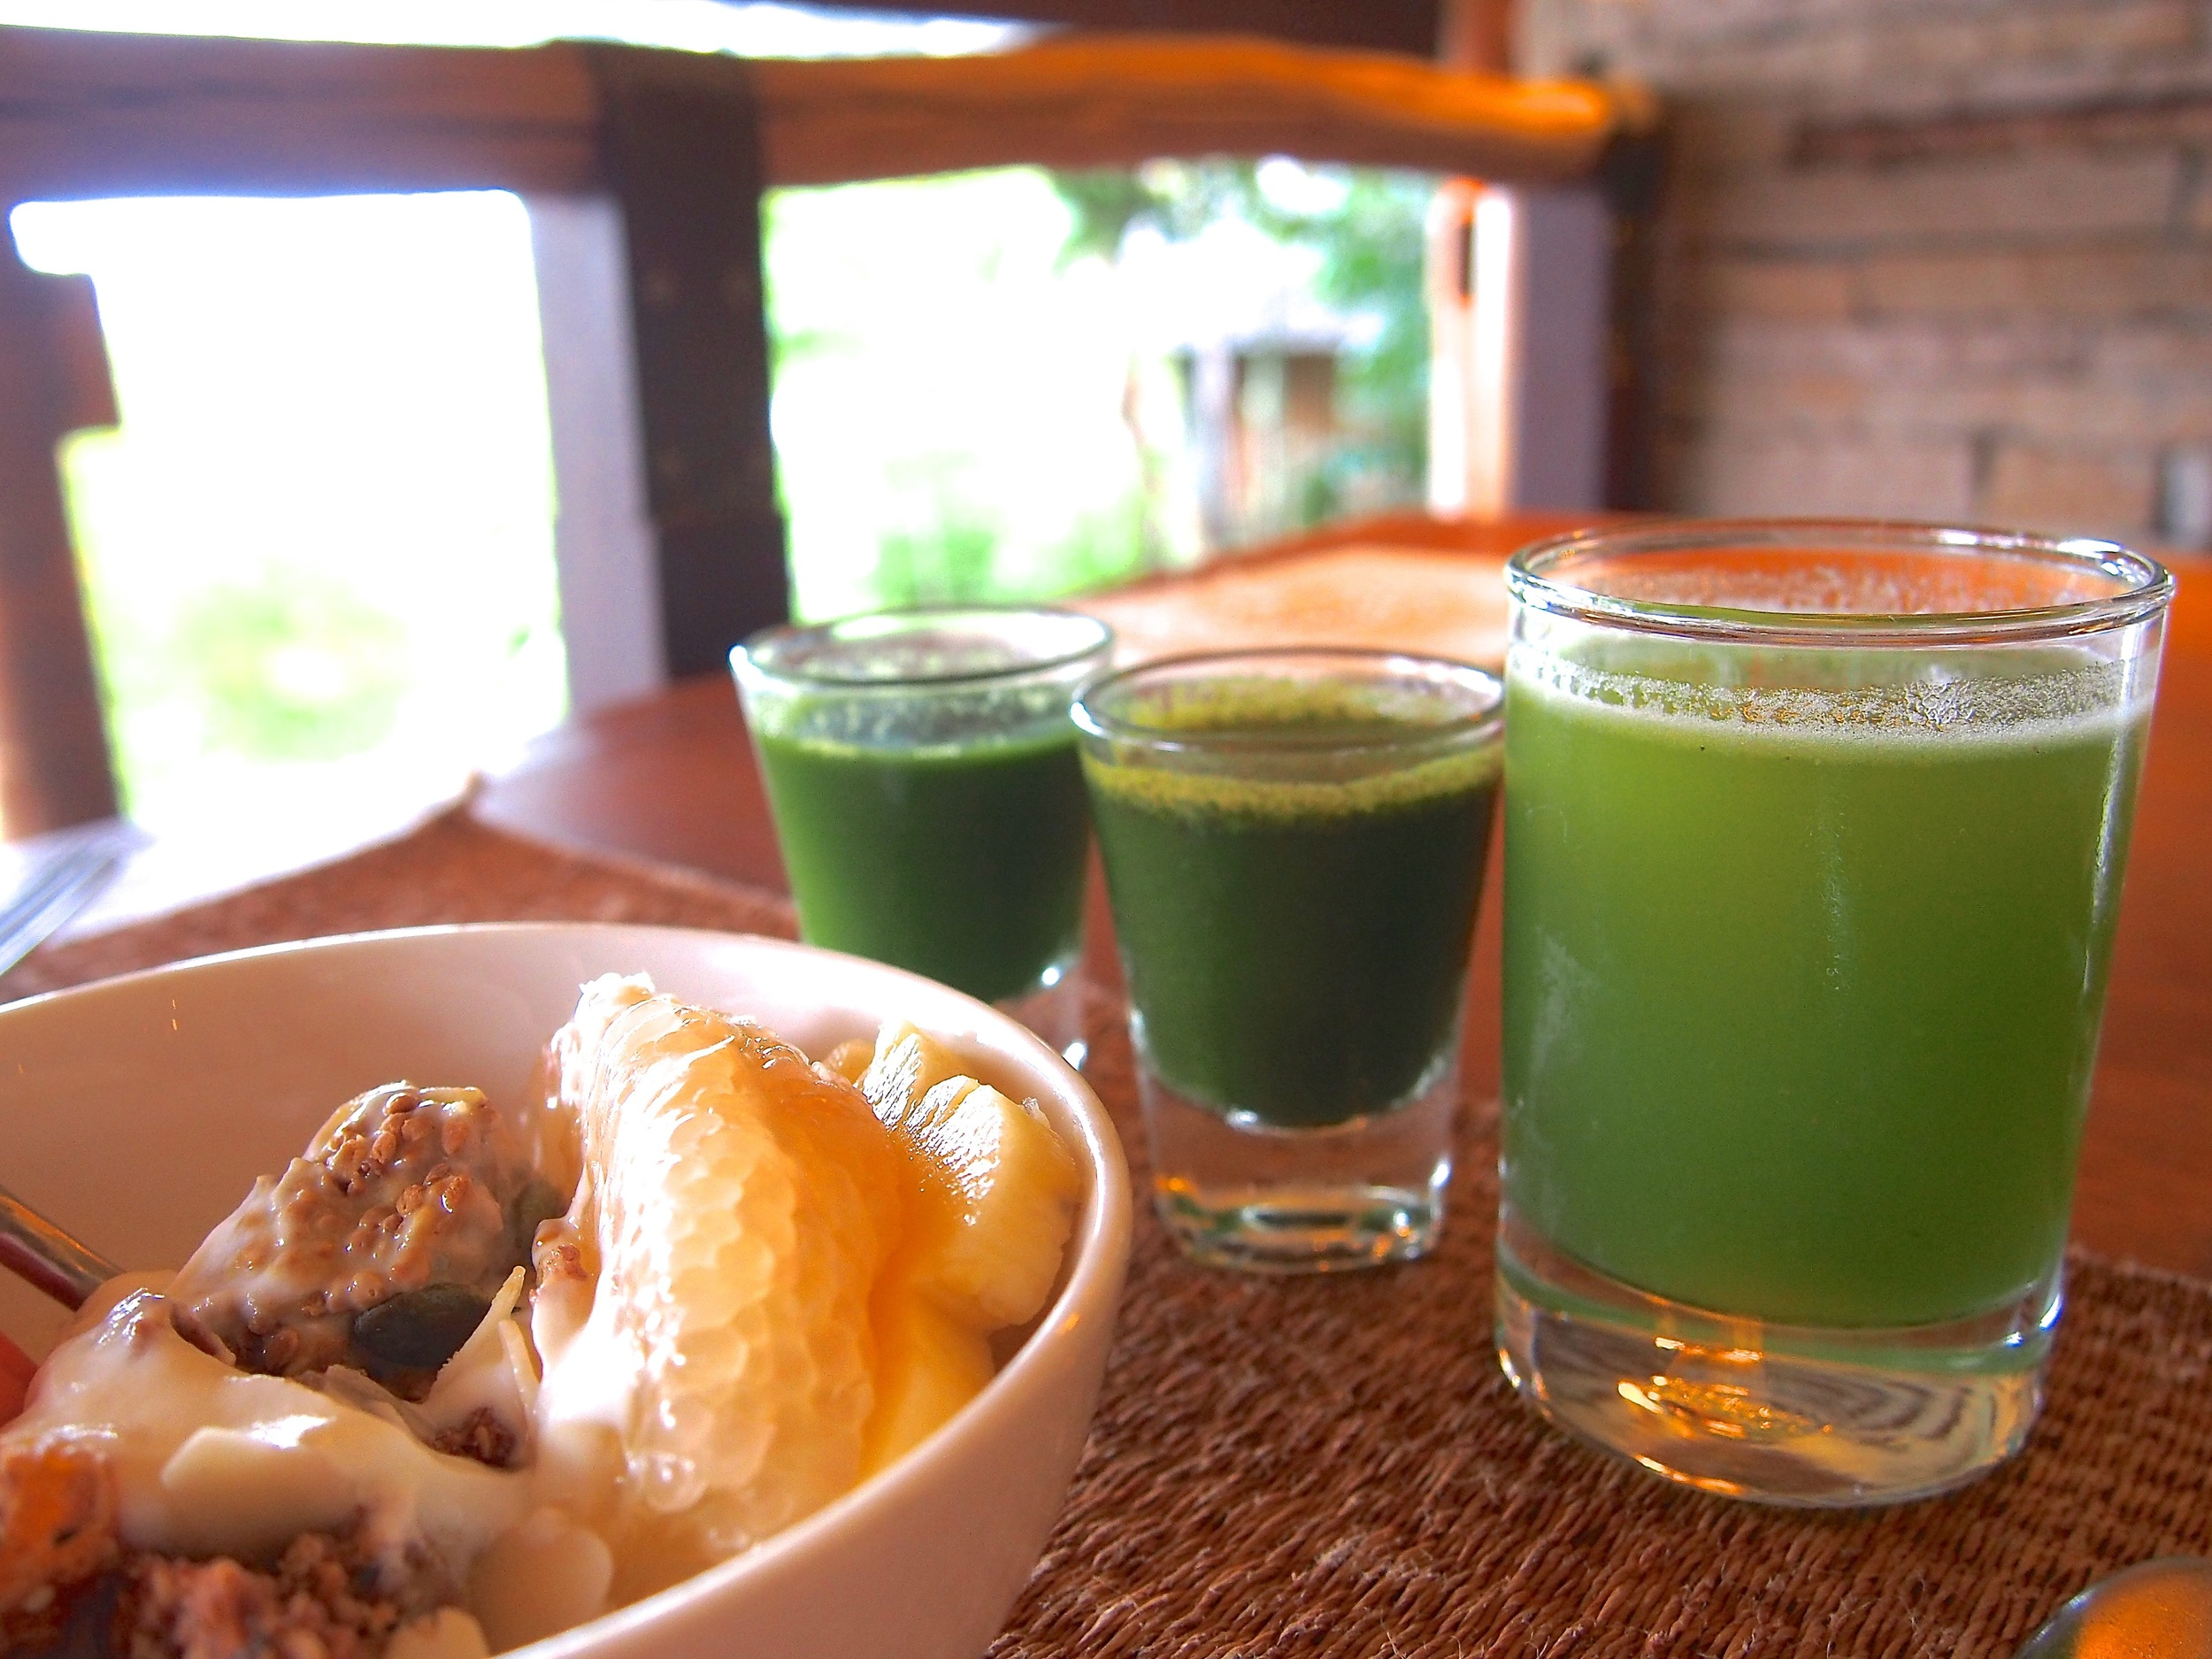 Lining up my superfood shots for the morning. I love how invigorating these mornings were!